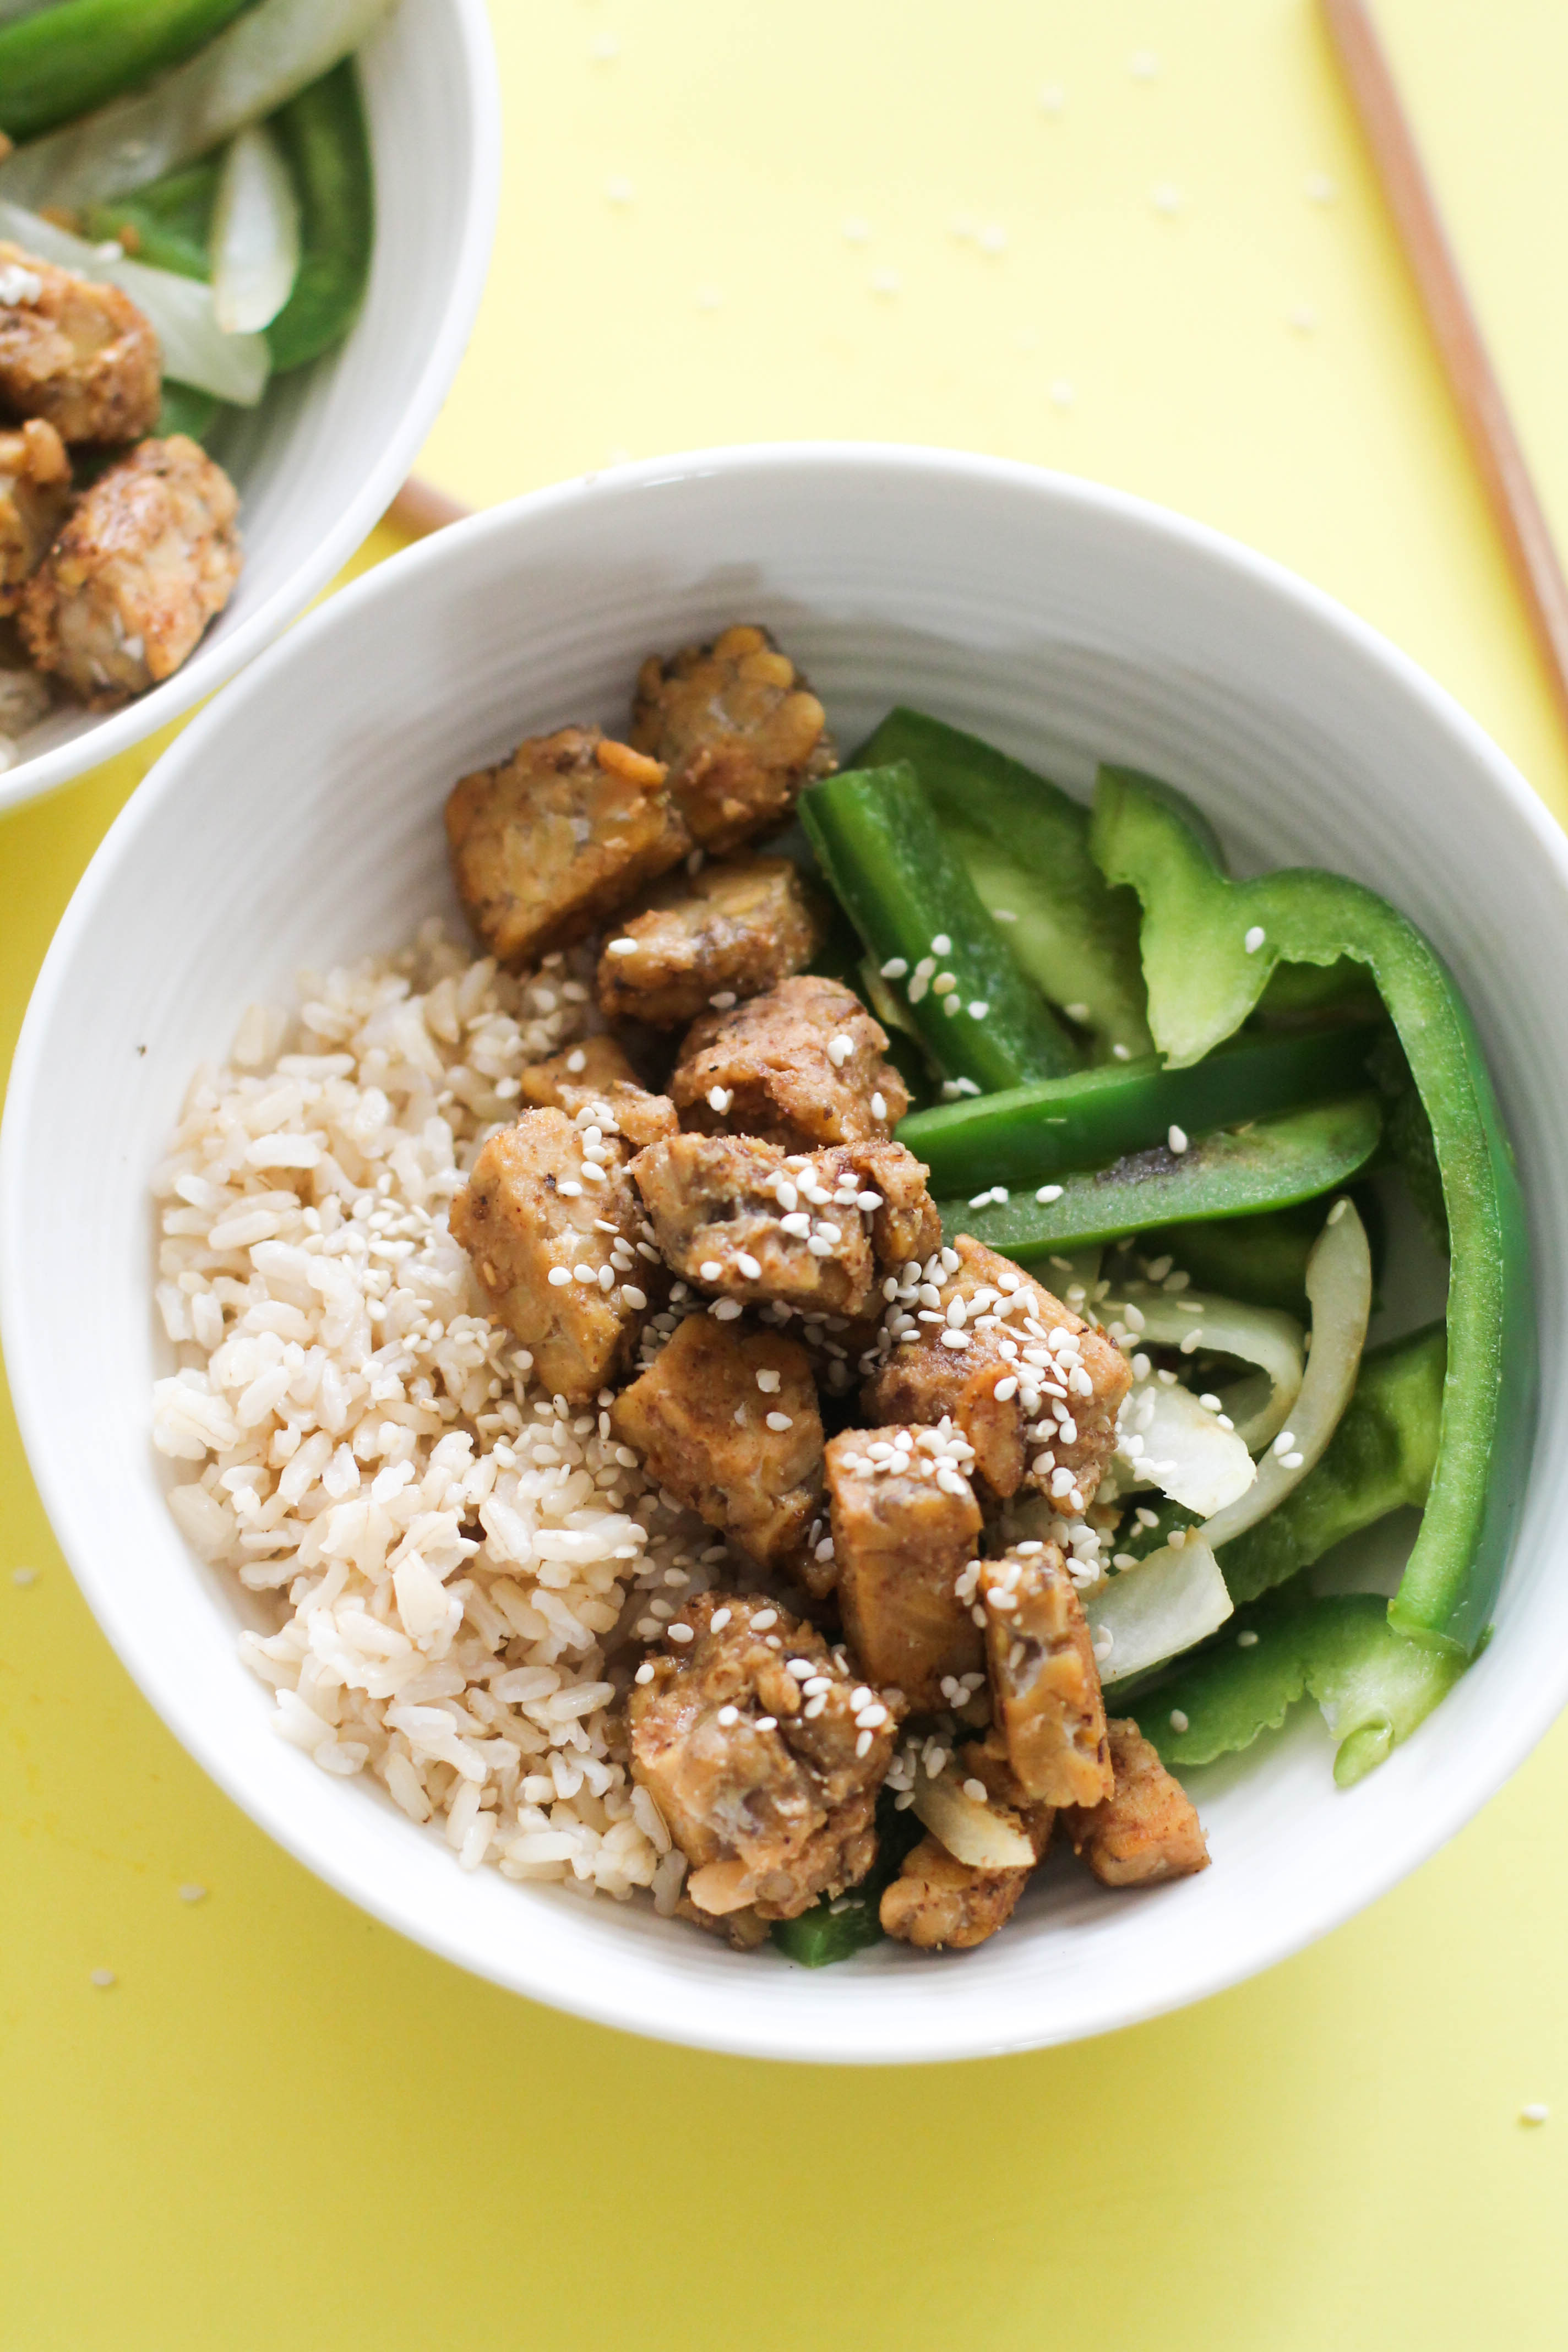 This peanut tempeh stir-fry is vegan, gluten free, ready in under 30 minutes, and is incredibly easy to make. It's filled with flavor, protein, healthy fats, and takes minimal effort.